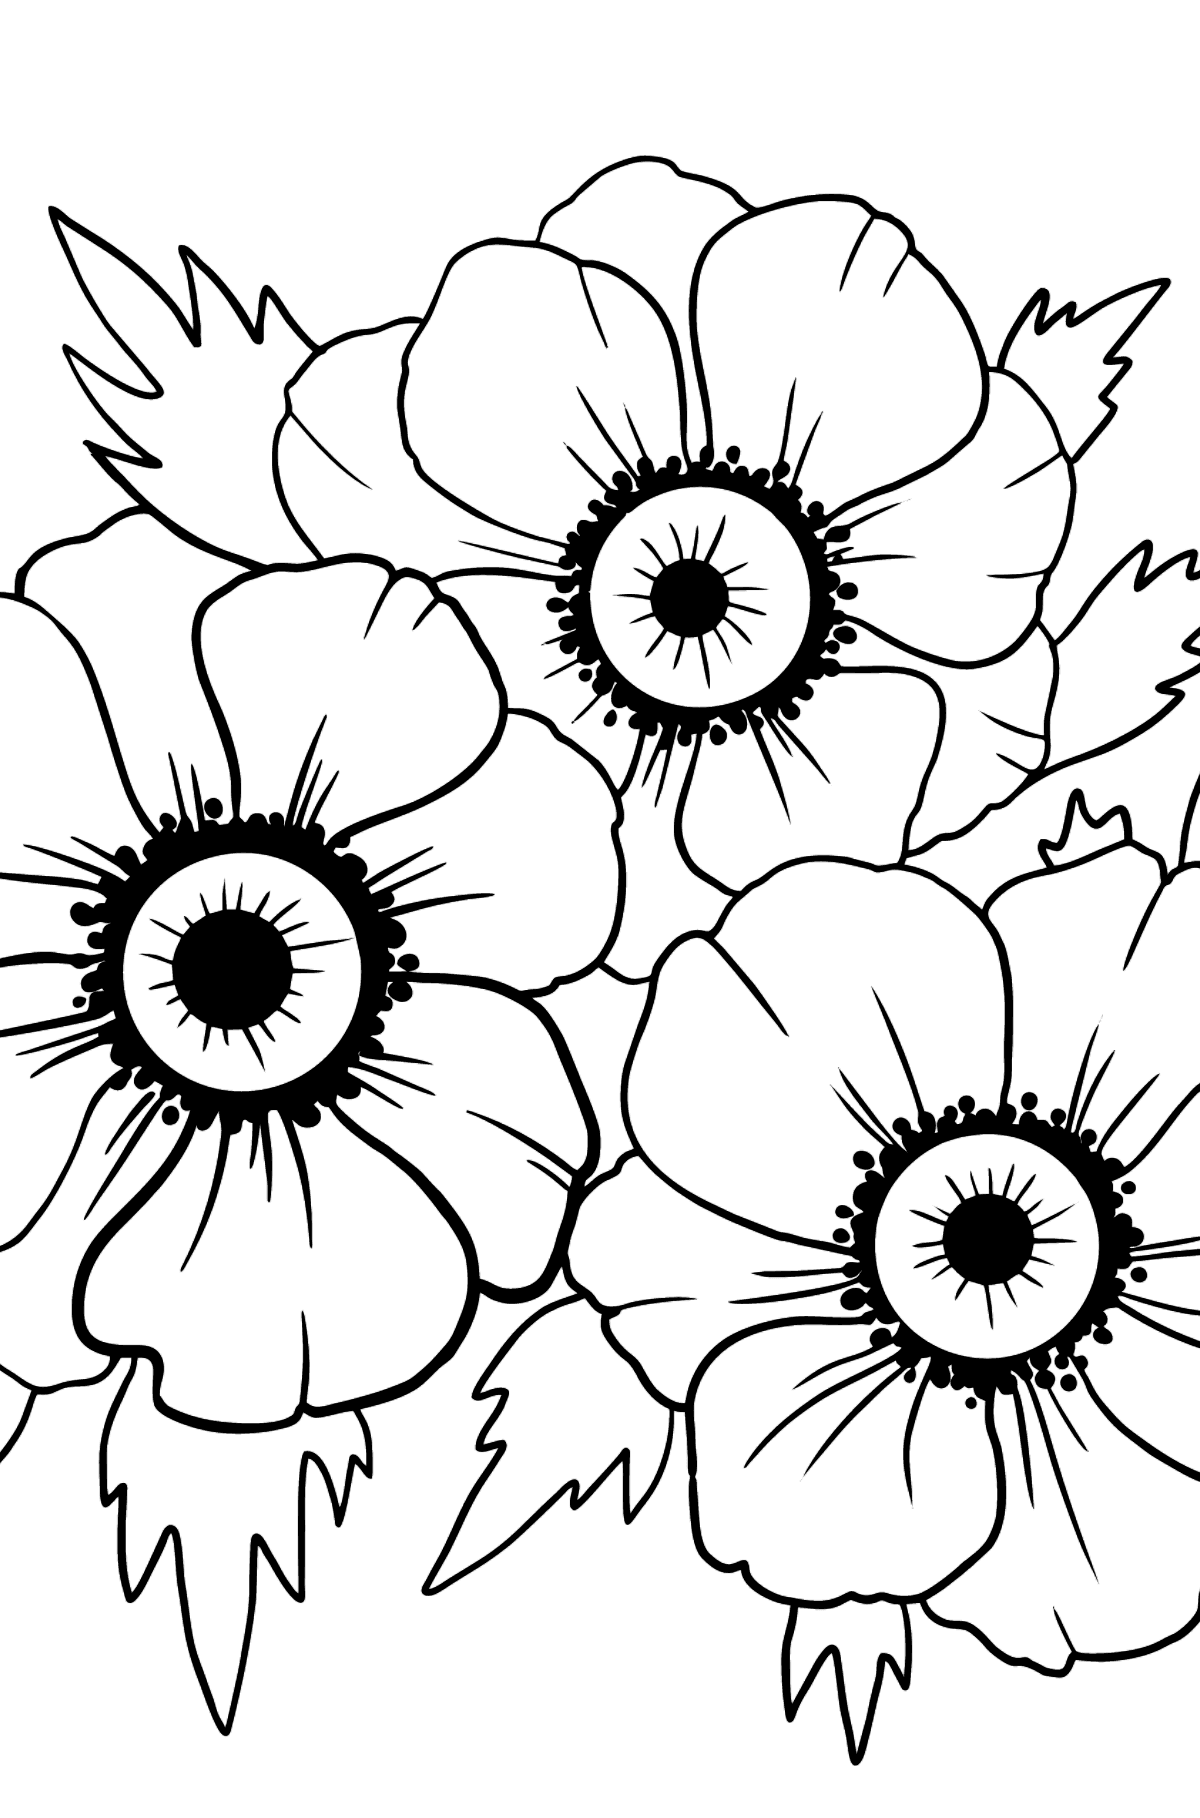 Flower Coloring Page - A Yellow and Orange Anemone Coronaria - Coloring Pages for Kids